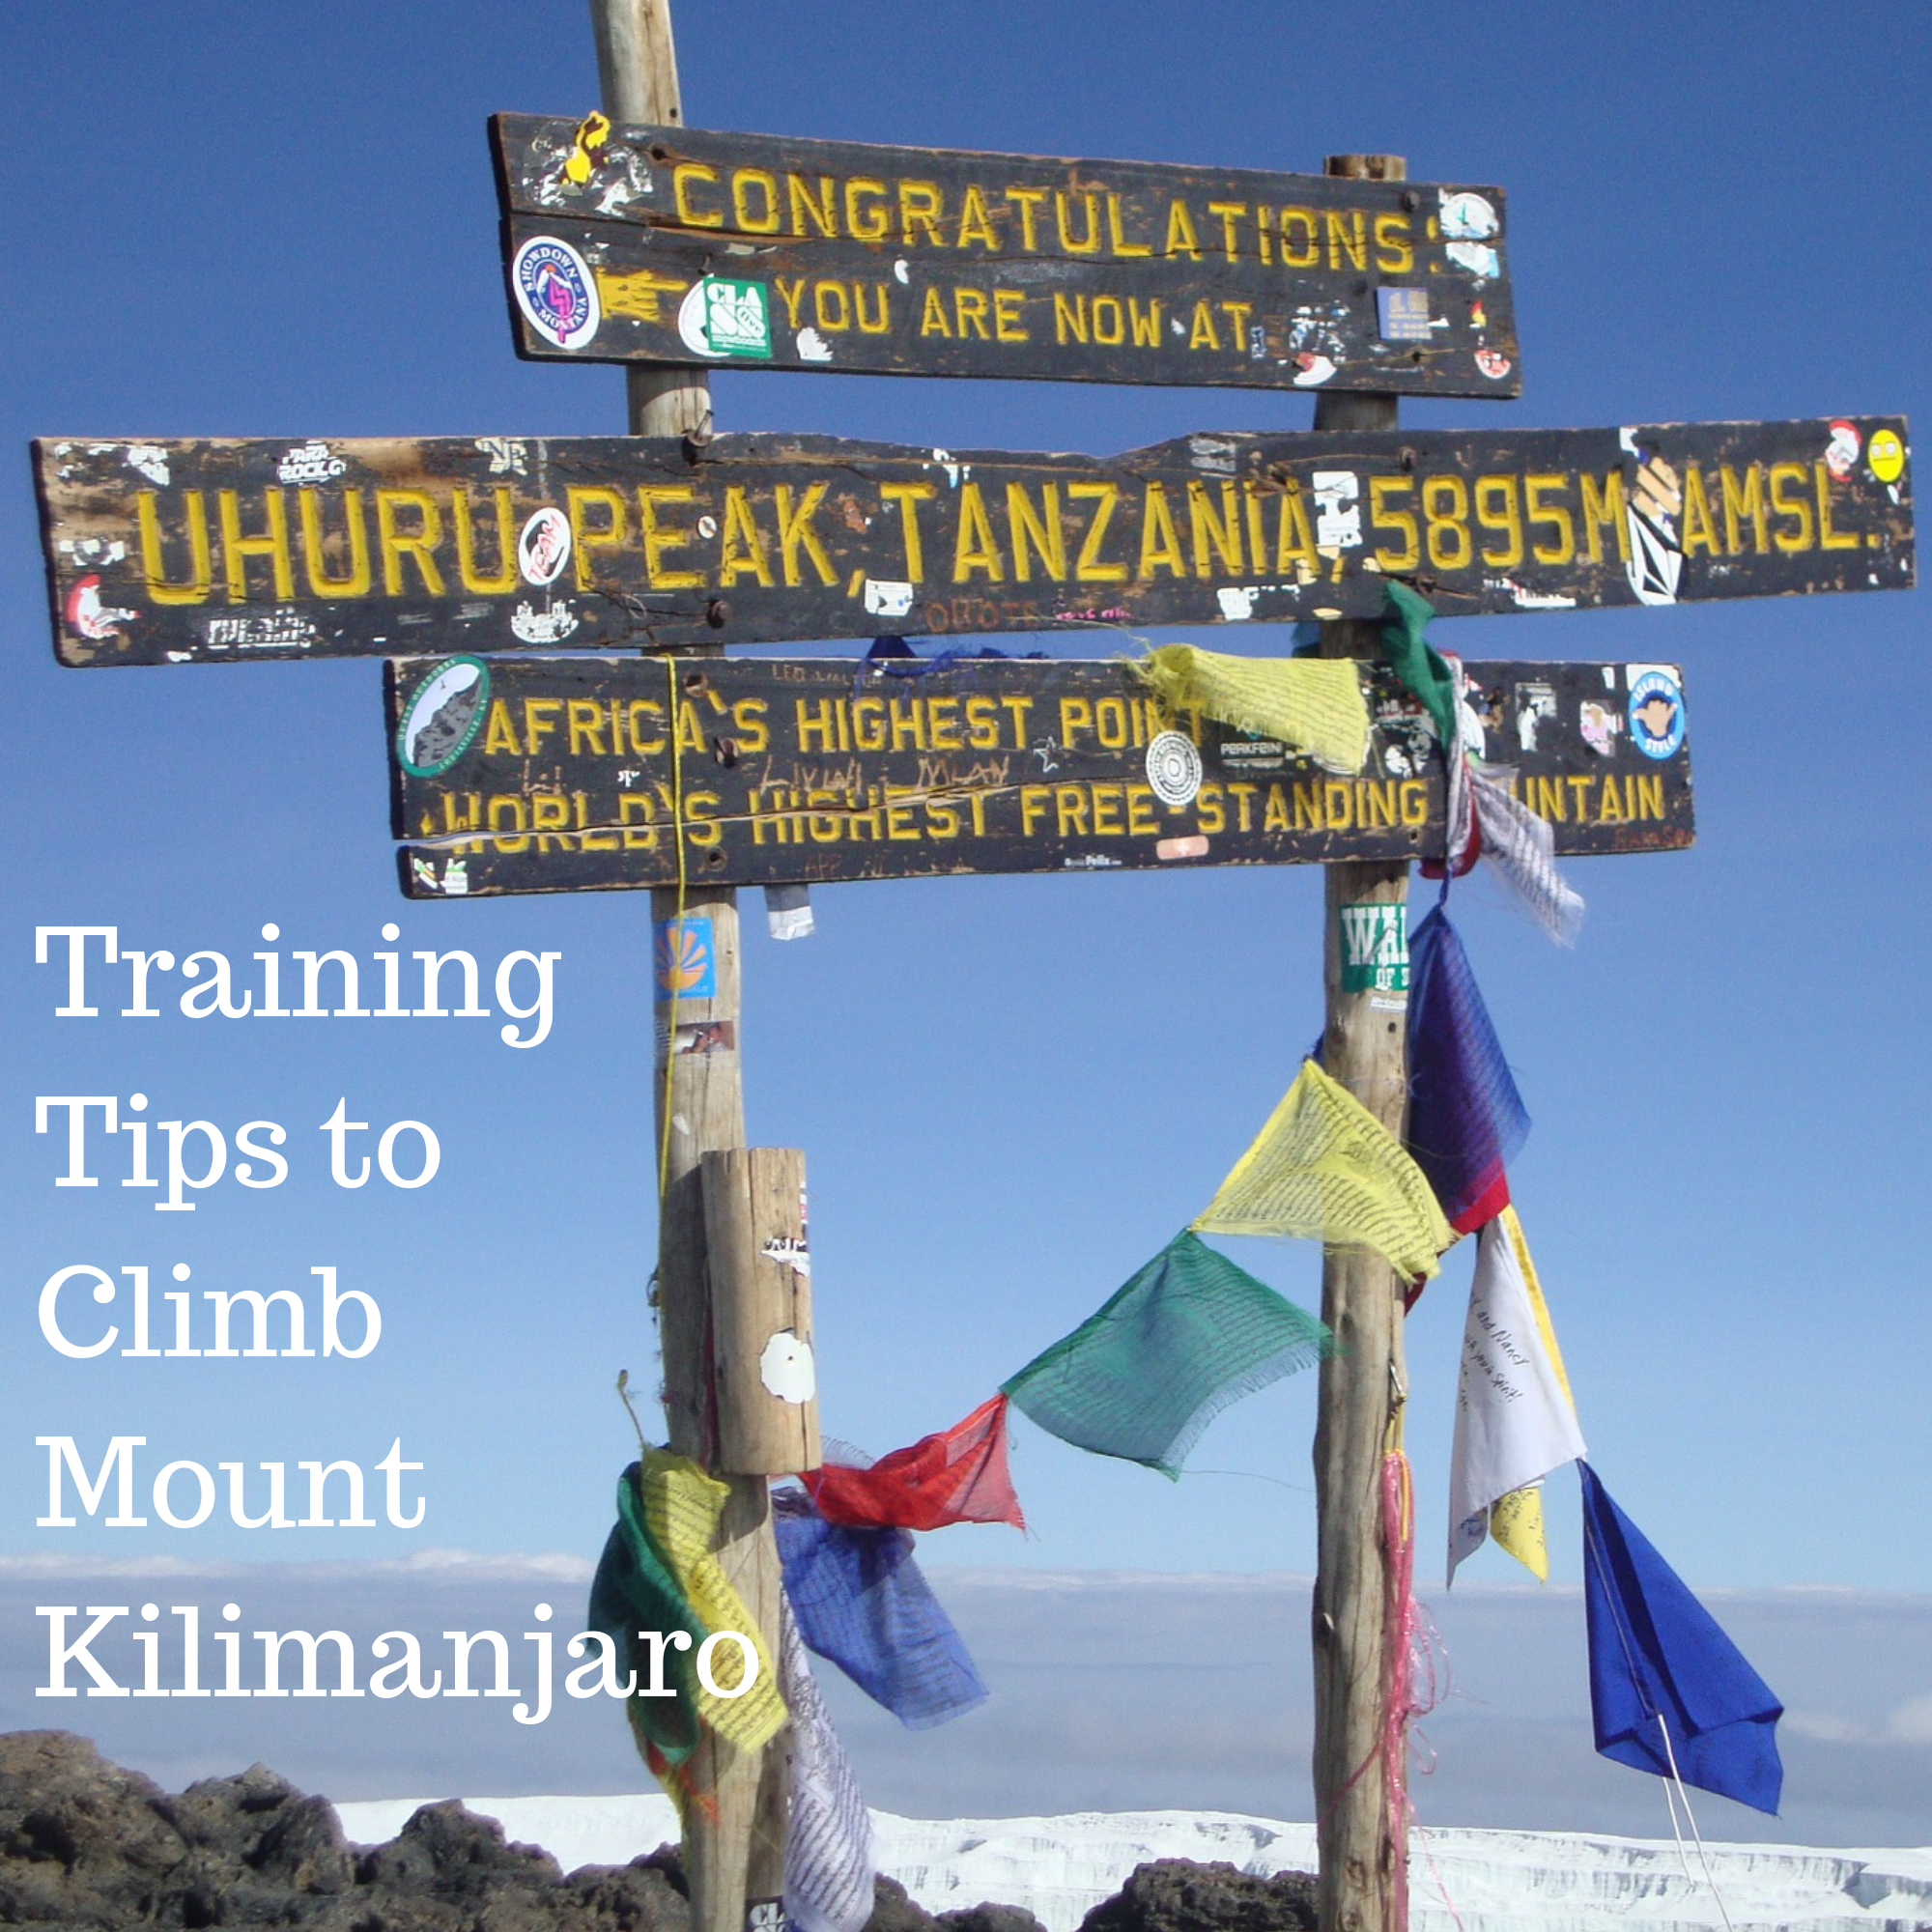 Training Tips to Climb Mount Kilimanjaro